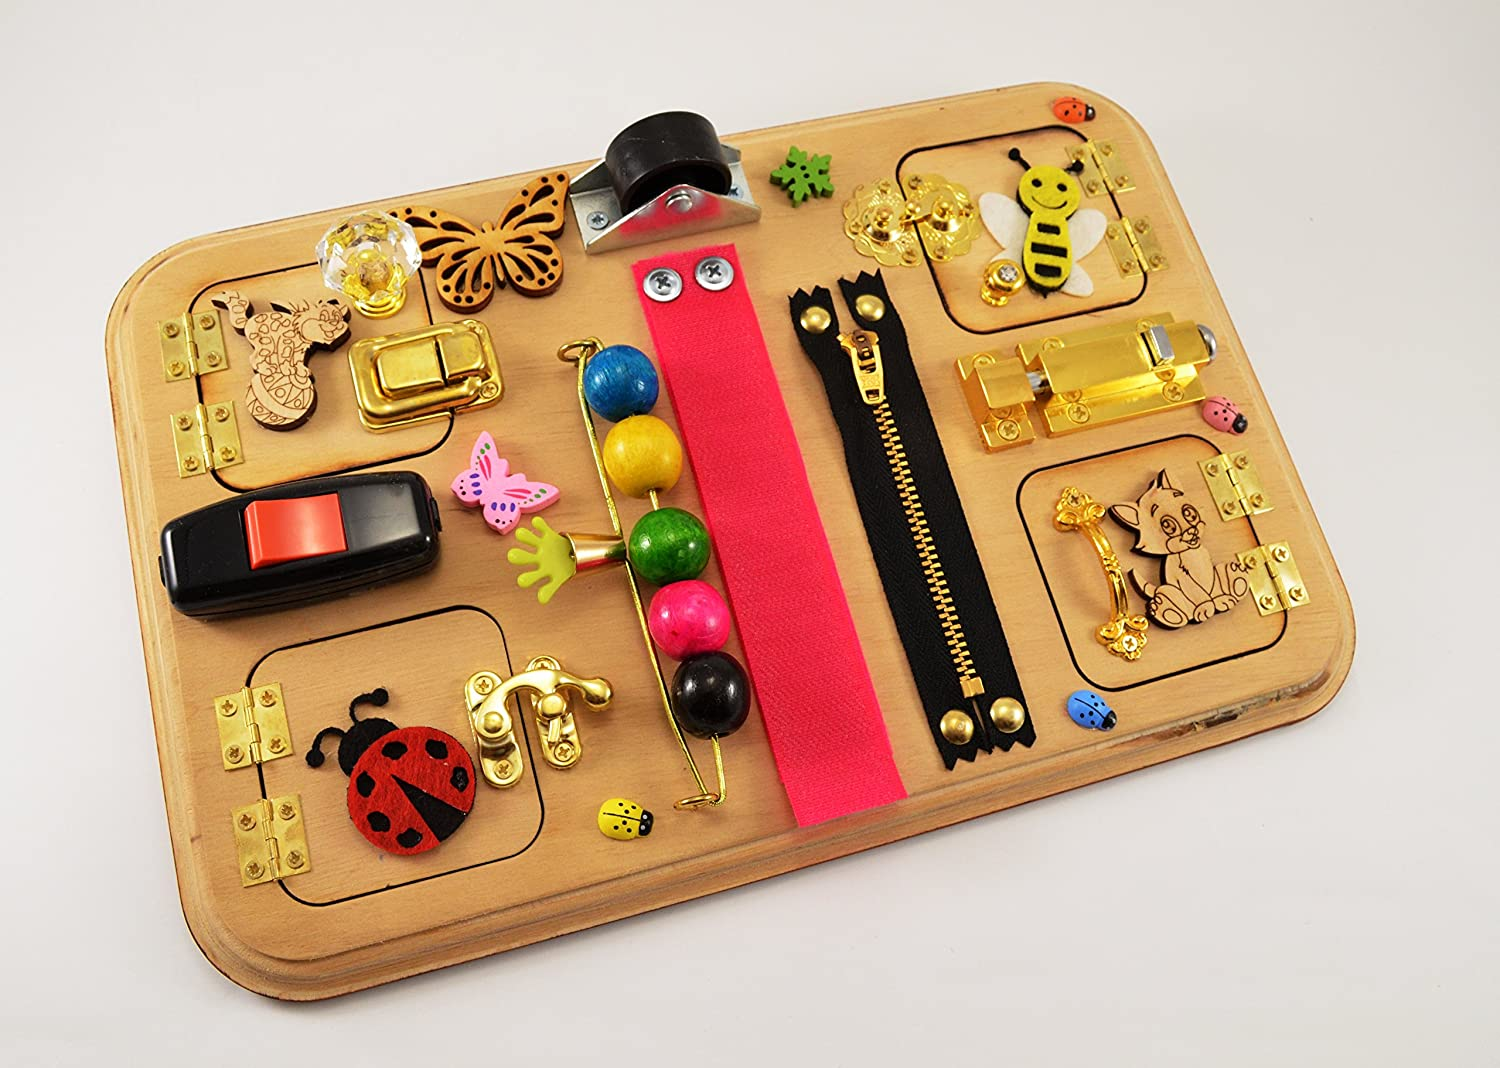 Busy board 2 year old Montessori toys Wooden toys for Toddlers Playroom idea Sensory board Activity board Handmade toys Wooden toys Eco Friendly